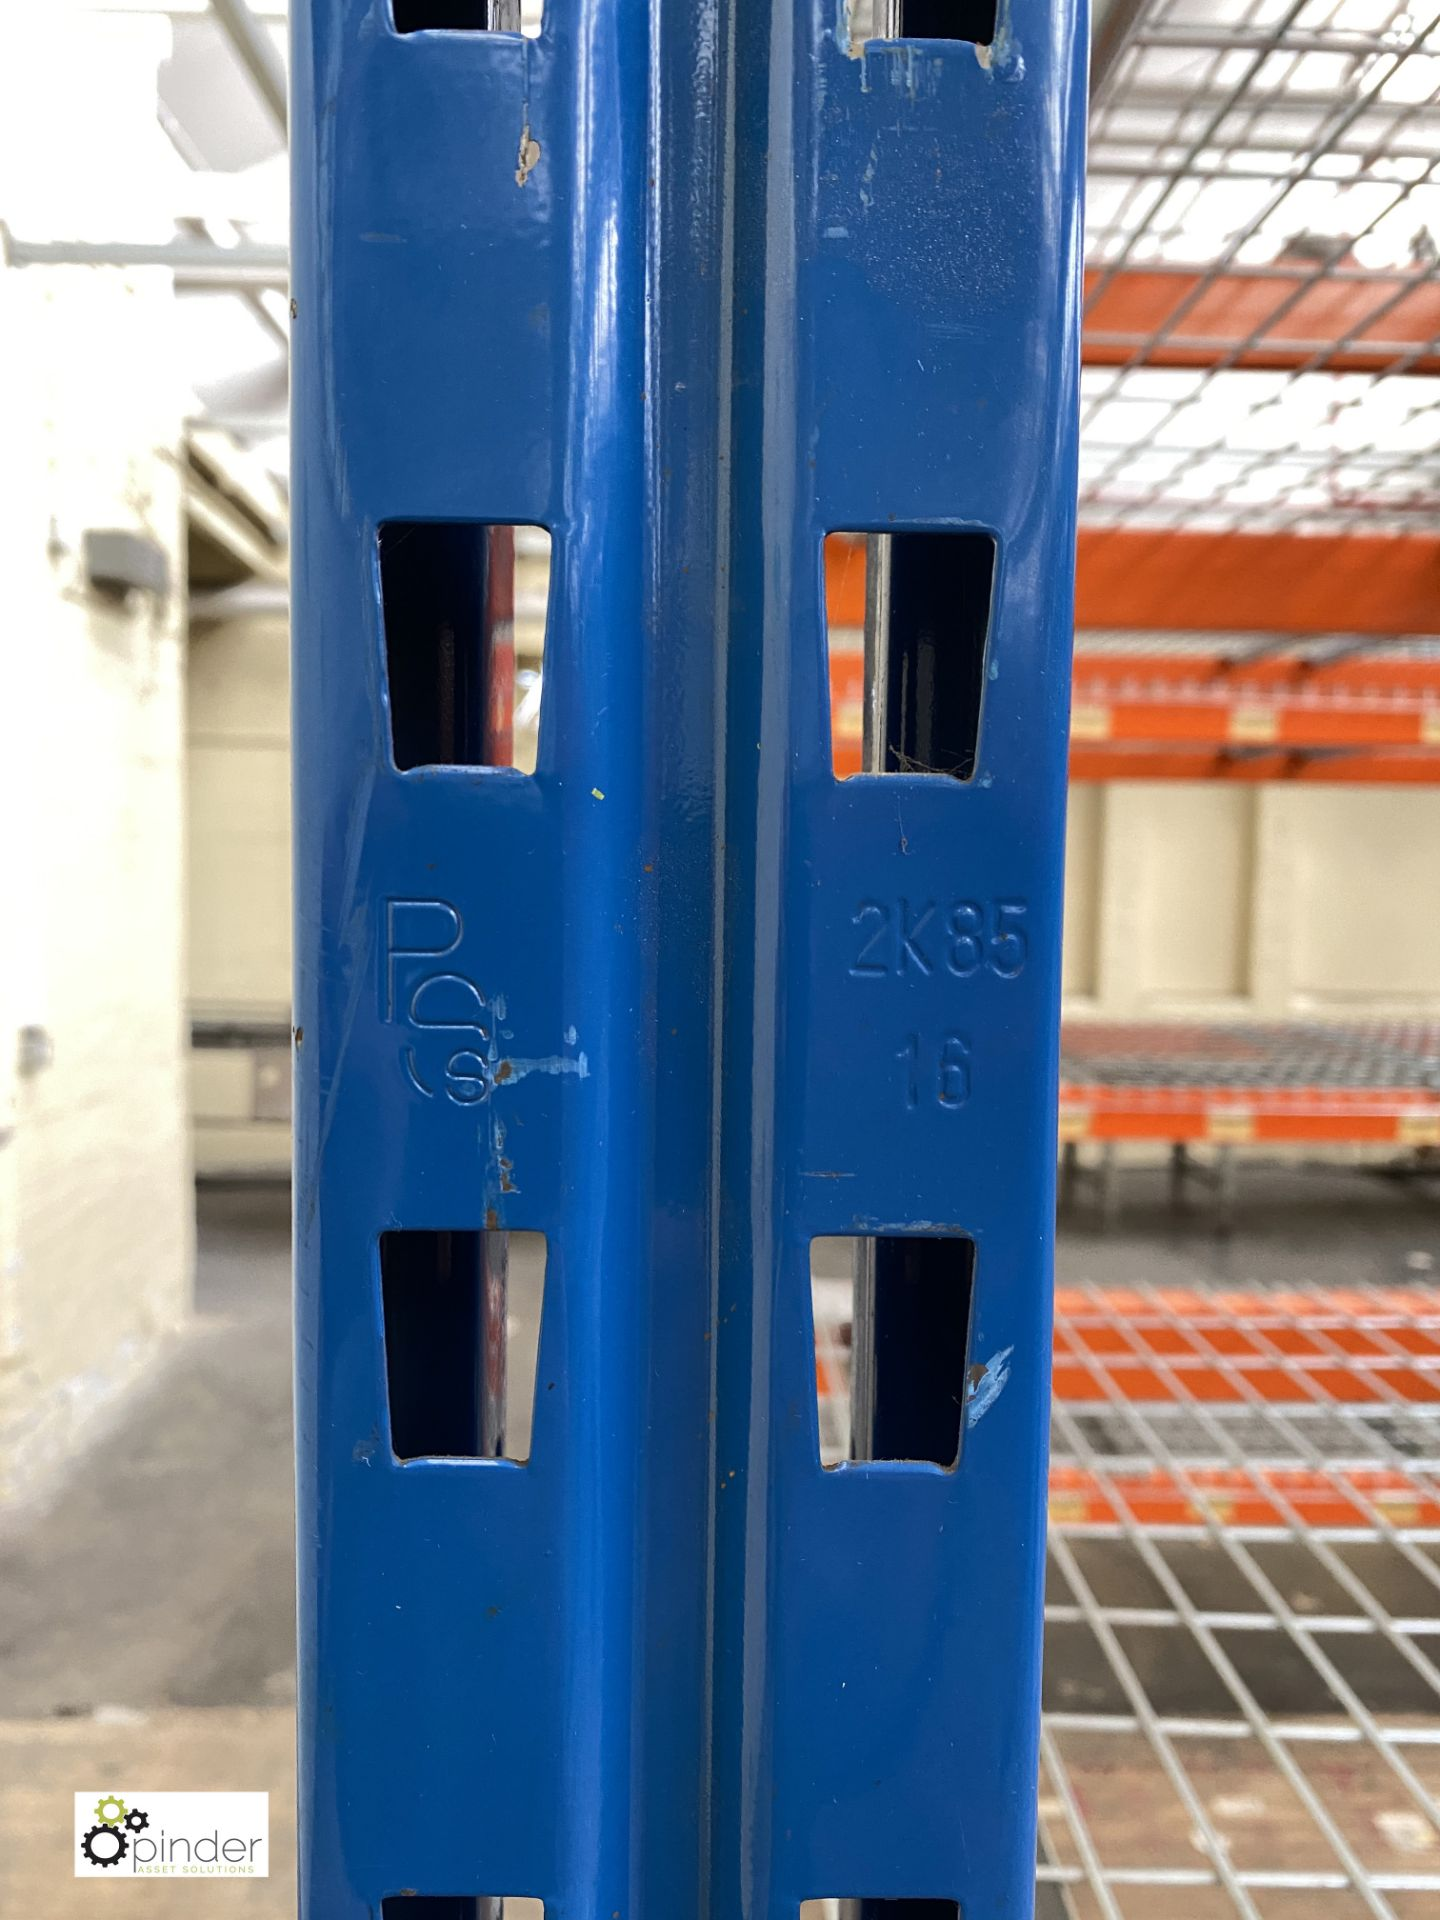 7 bays PSS 2K85 16 boltless Stock Racking, comprising 8 uprights 2400mm x 1200mm, 56 beams 2700mm, - Image 5 of 5